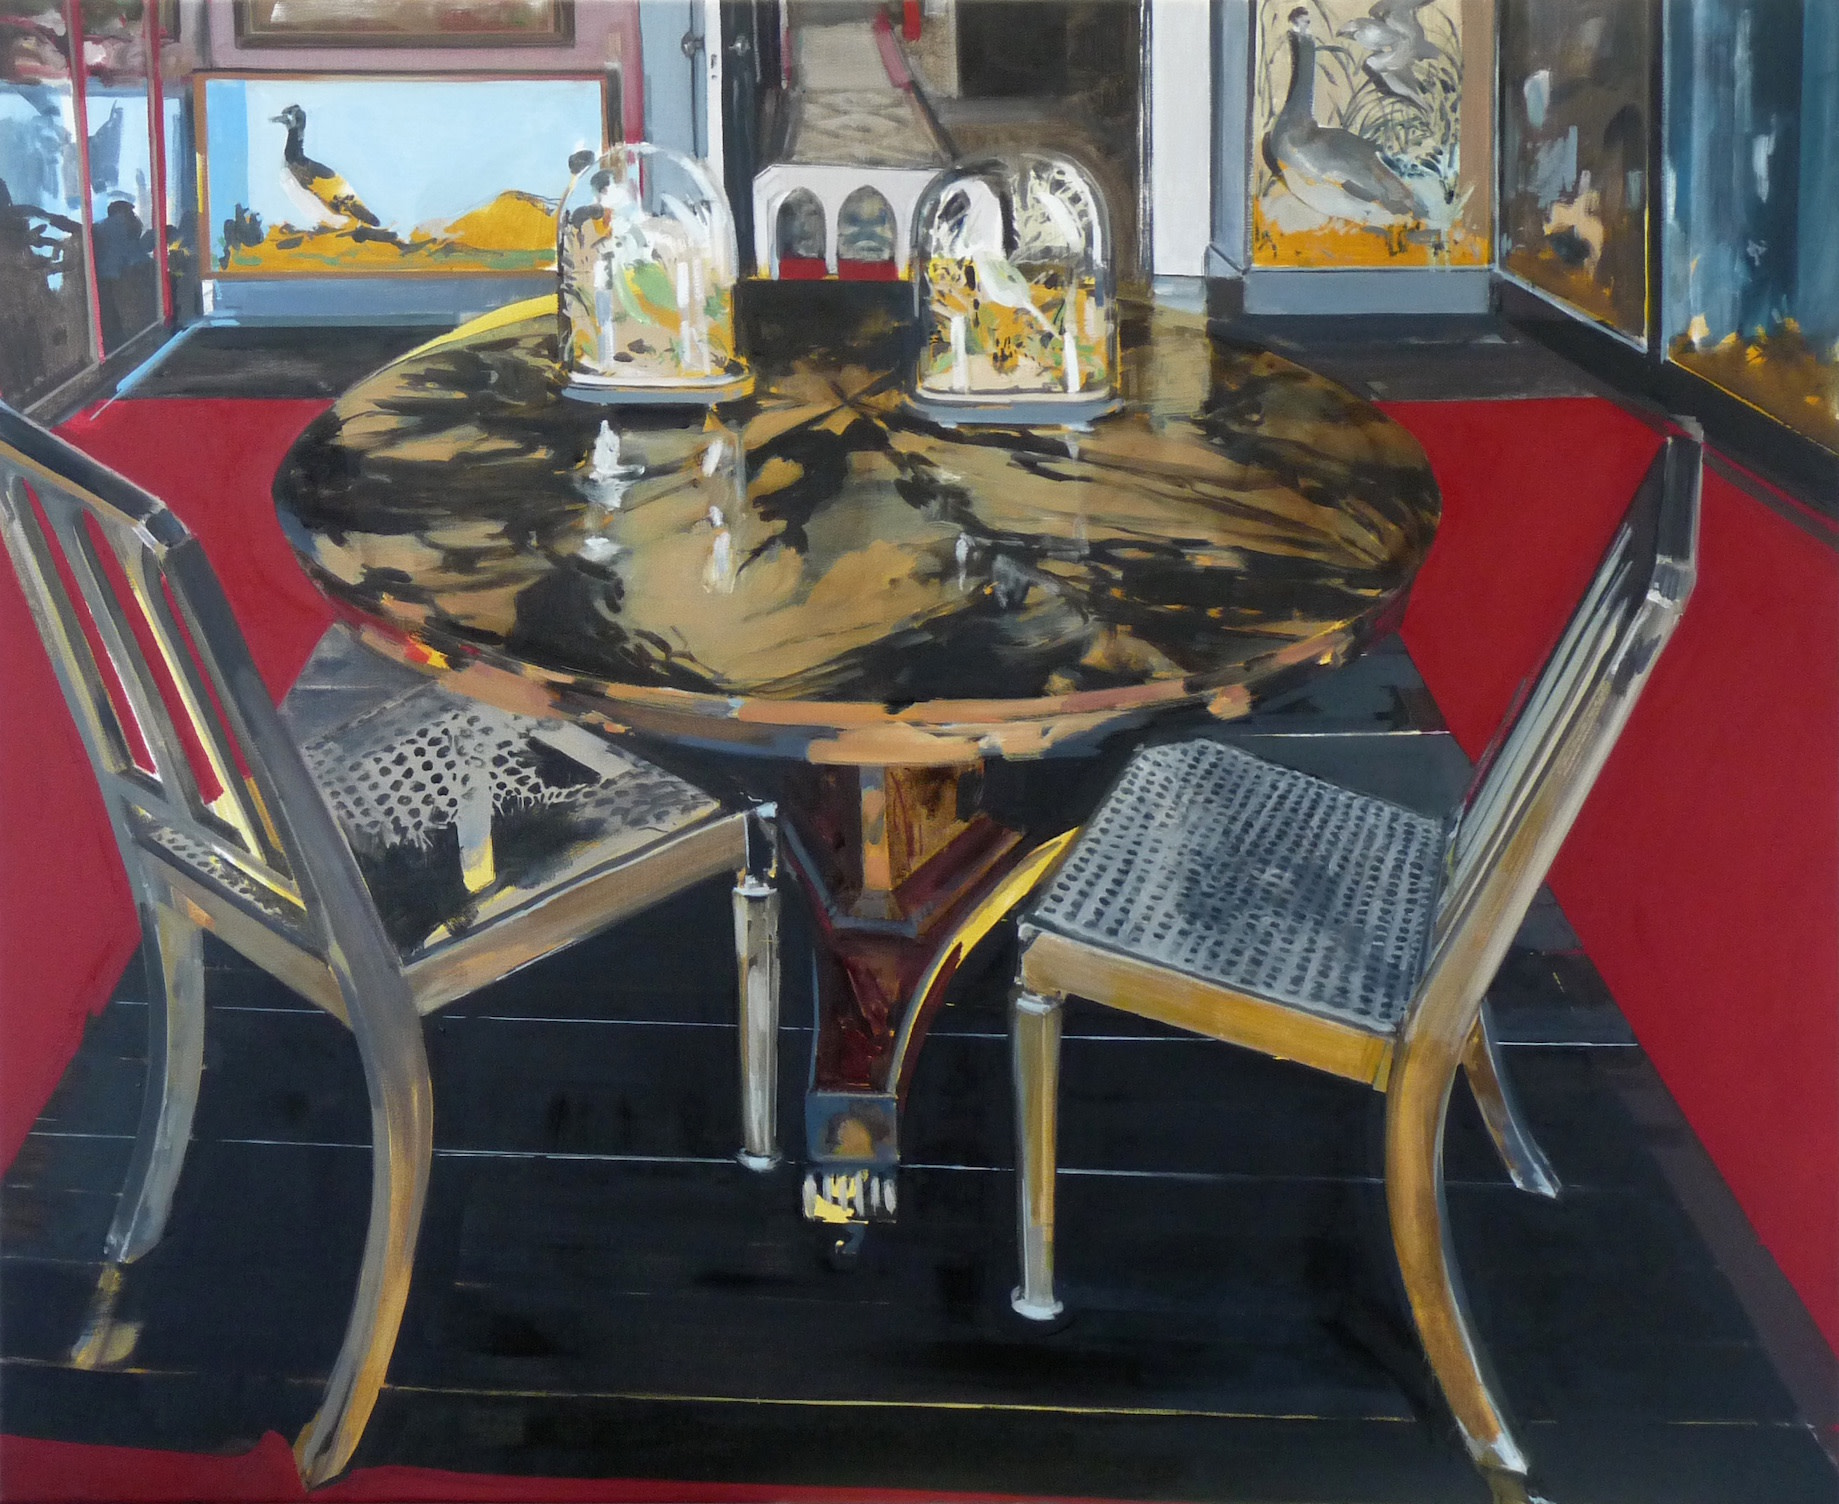 """<span class=""""link fancybox-details-link""""><a href=""""/exhibitions/19/works/artworks2239/"""">View Detail Page</a></span><div class=""""artist""""><strong>Eleanor Watson</strong></div><div class=""""title""""><em>Kept</em>, 2016</div><div class=""""medium"""">Oil on Canvas</div><div class=""""dimensions"""">90 x 110 cm<br>35 3/8 x 43 1/4 in.</div>"""